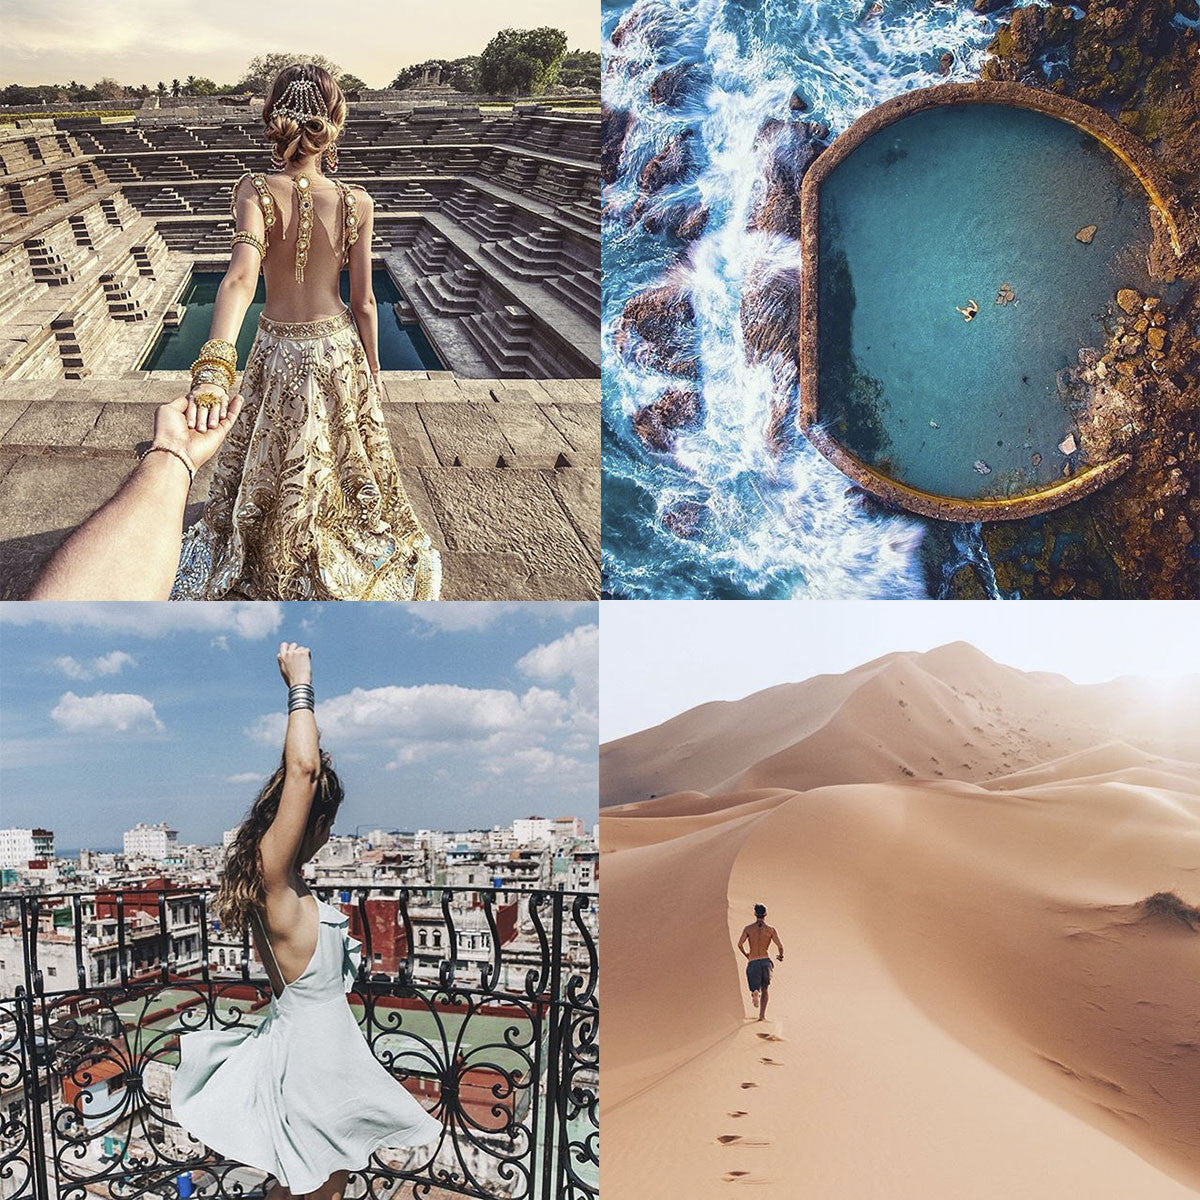 5 Instagram Travel Photographers To Get You Daydreaming